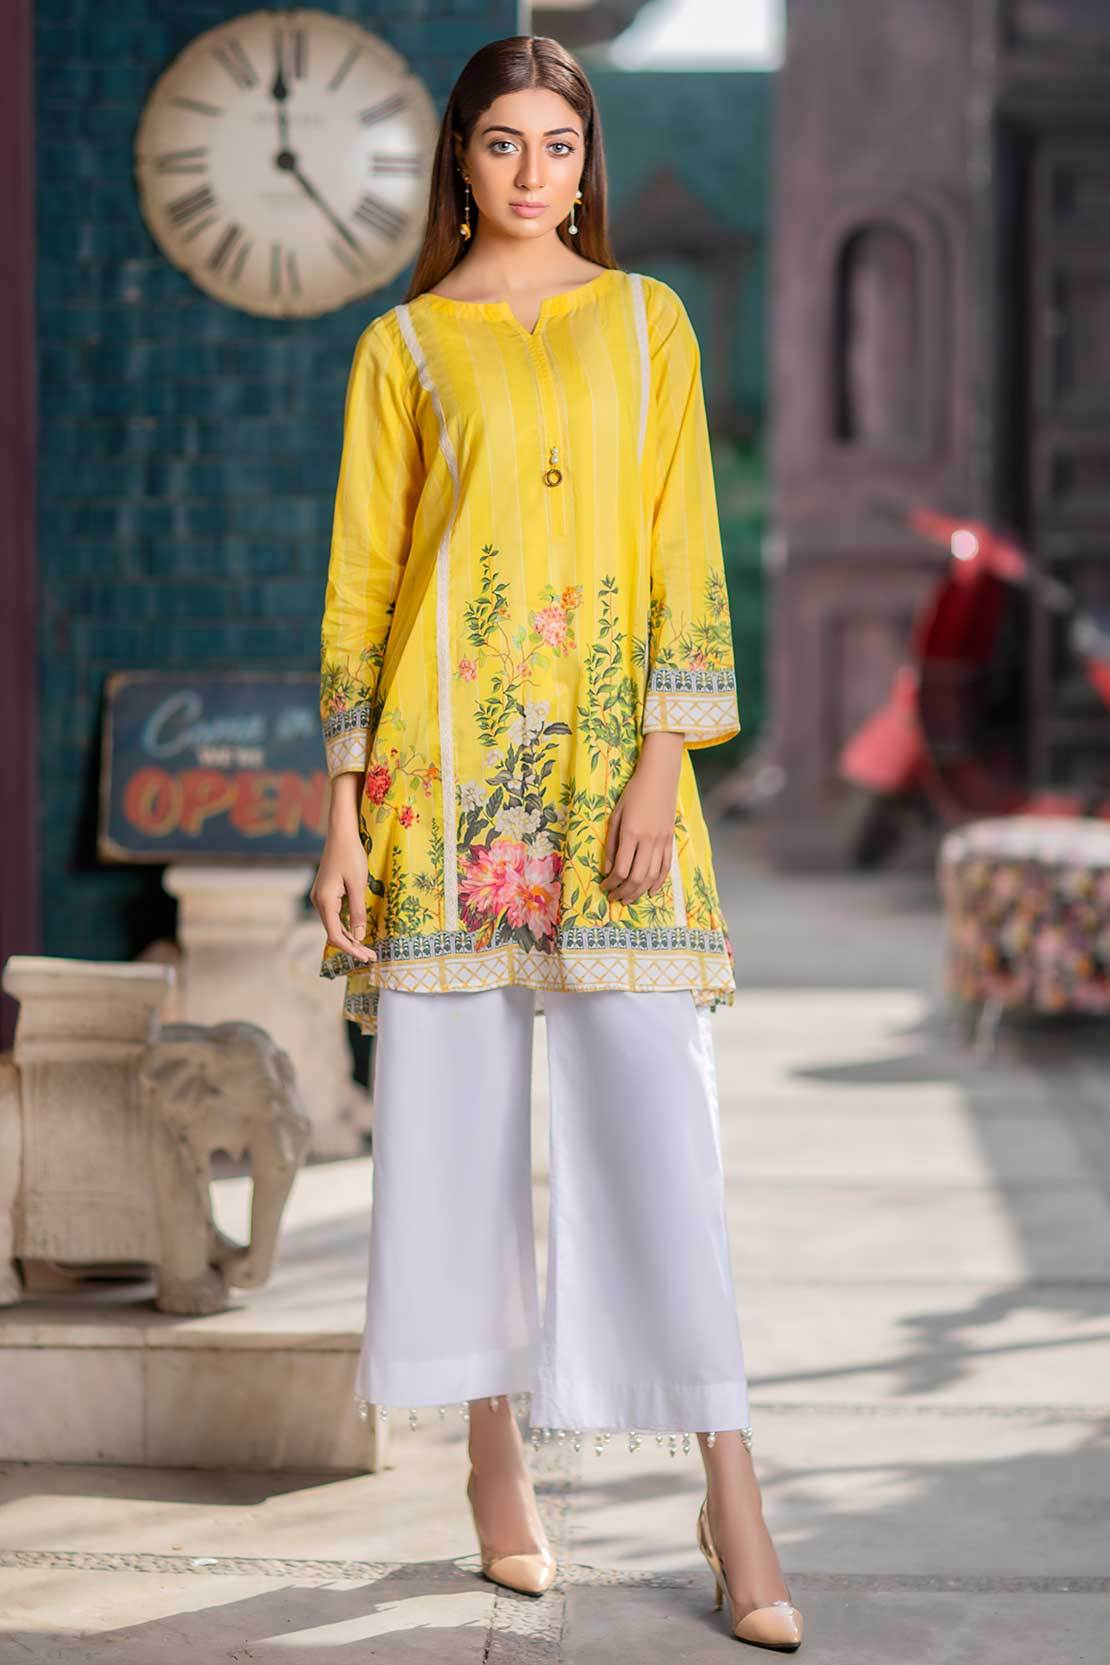 Stylish So Kamal Spring Summer Pret For Yr 19 shirts starting from PKR 2400